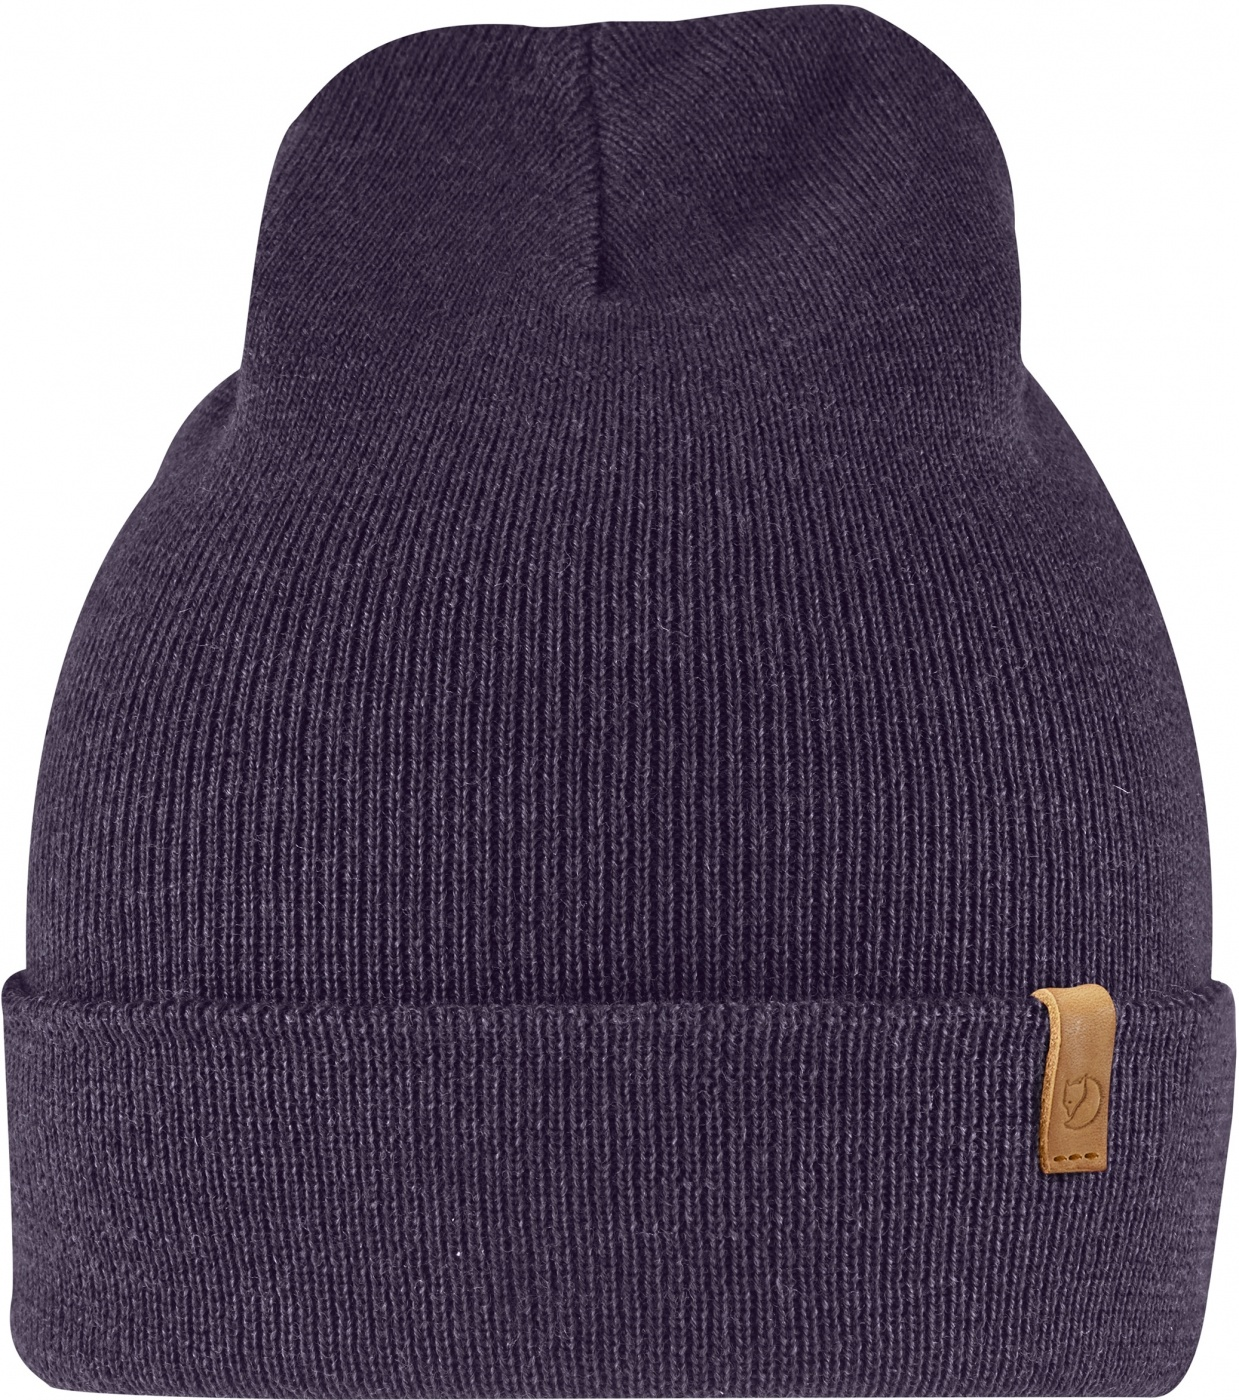 FjallRaven Classic Knit Hat Alpine Purple-30